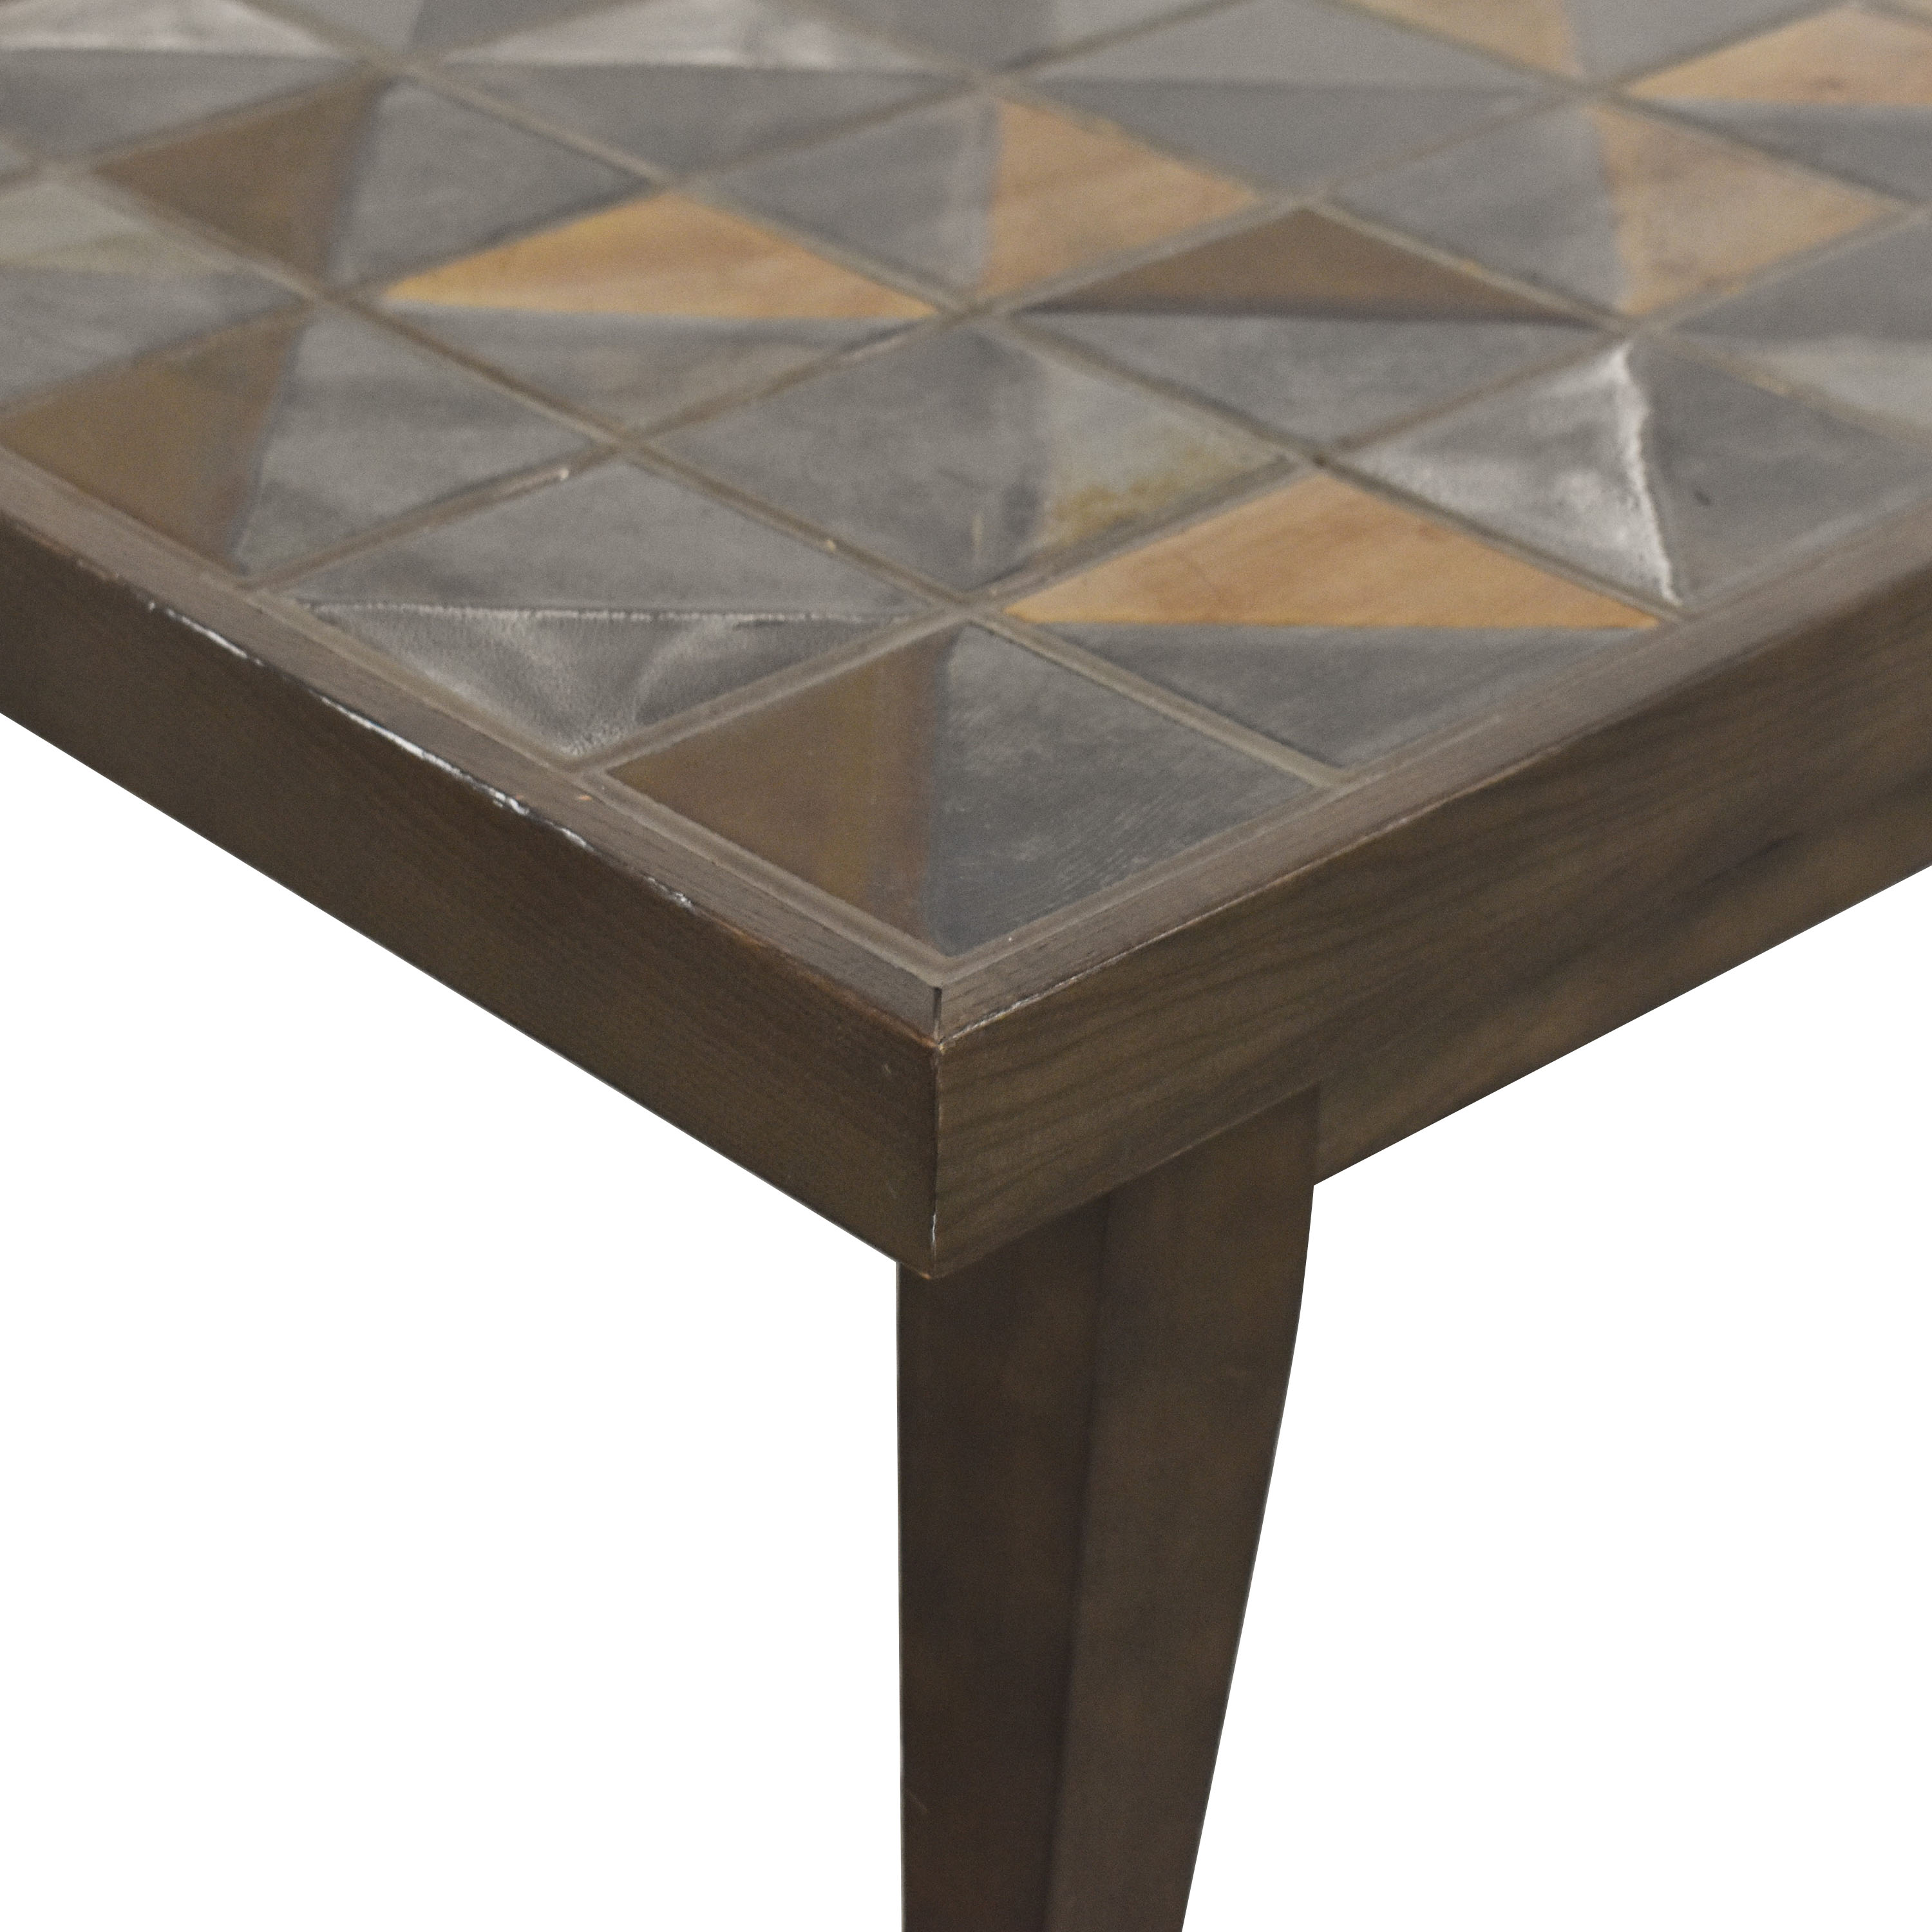 buy West Elm Lubna Chowdhary Coffee Table West Elm Coffee Tables